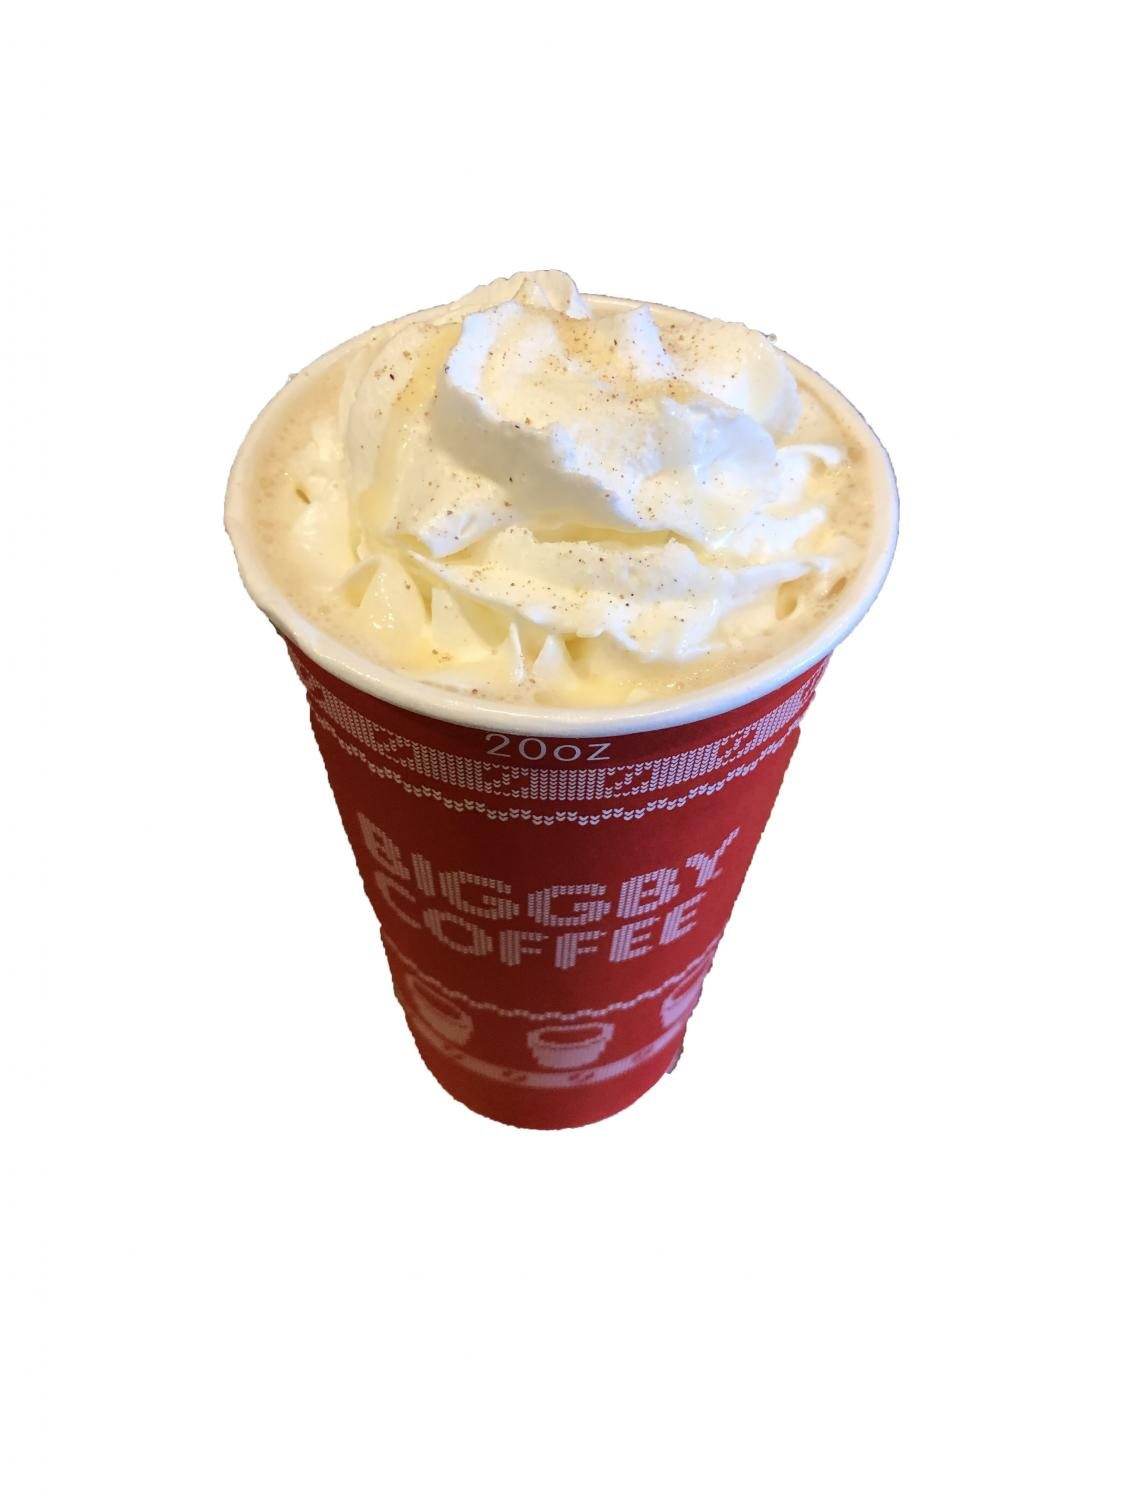 The Winter Wonderland latte is available at Biggy throughout the rest of December. Costumers can purchase a tall, grande, or super size.